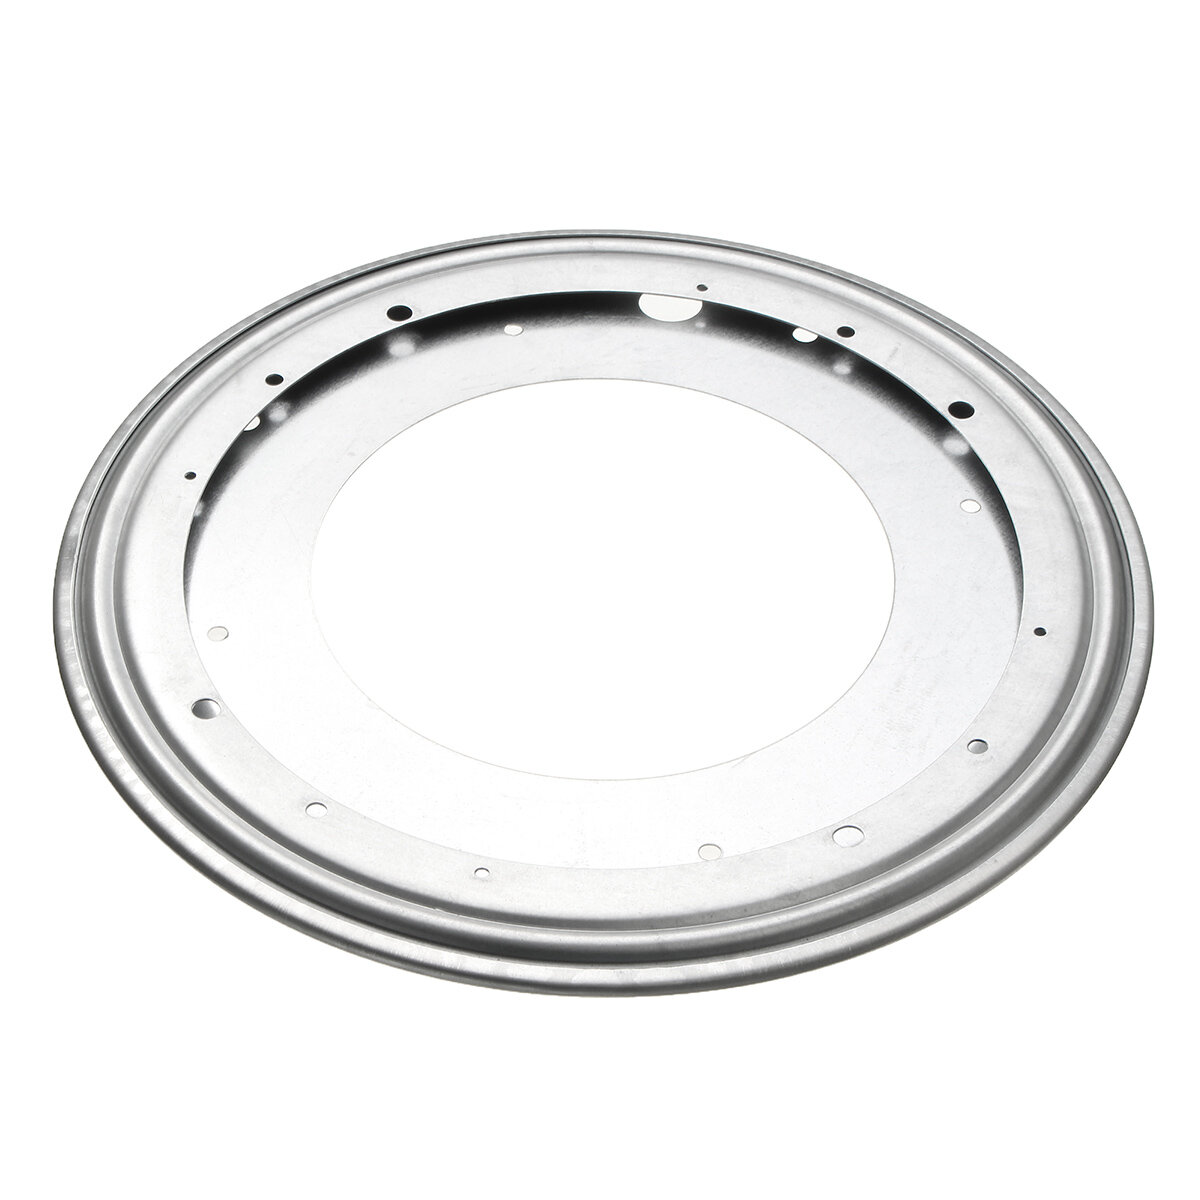 12 Inch Heavy Duty Steel Lazy Susan Bearing 1000 Lb Round Turntable Plate Cod